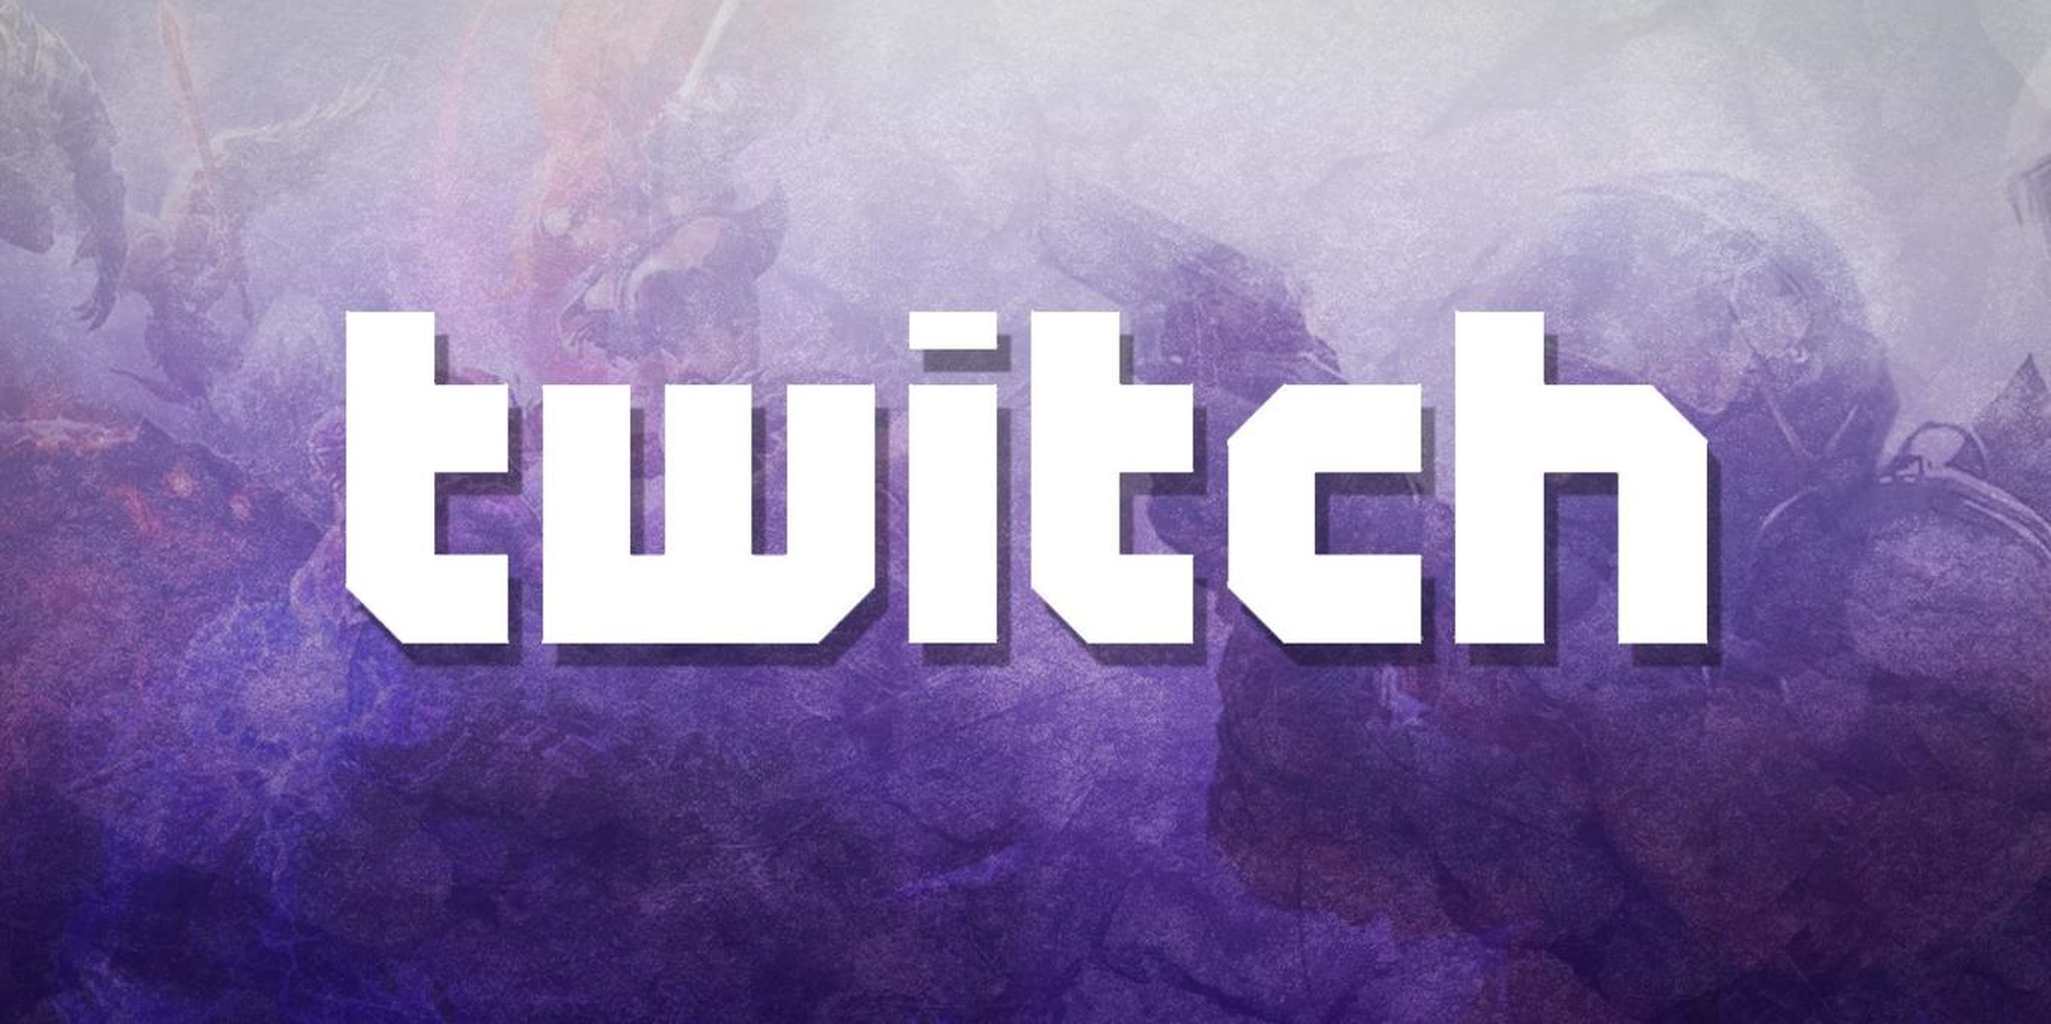 Twitch Wallpaper And Background Image 2051x1024 Id